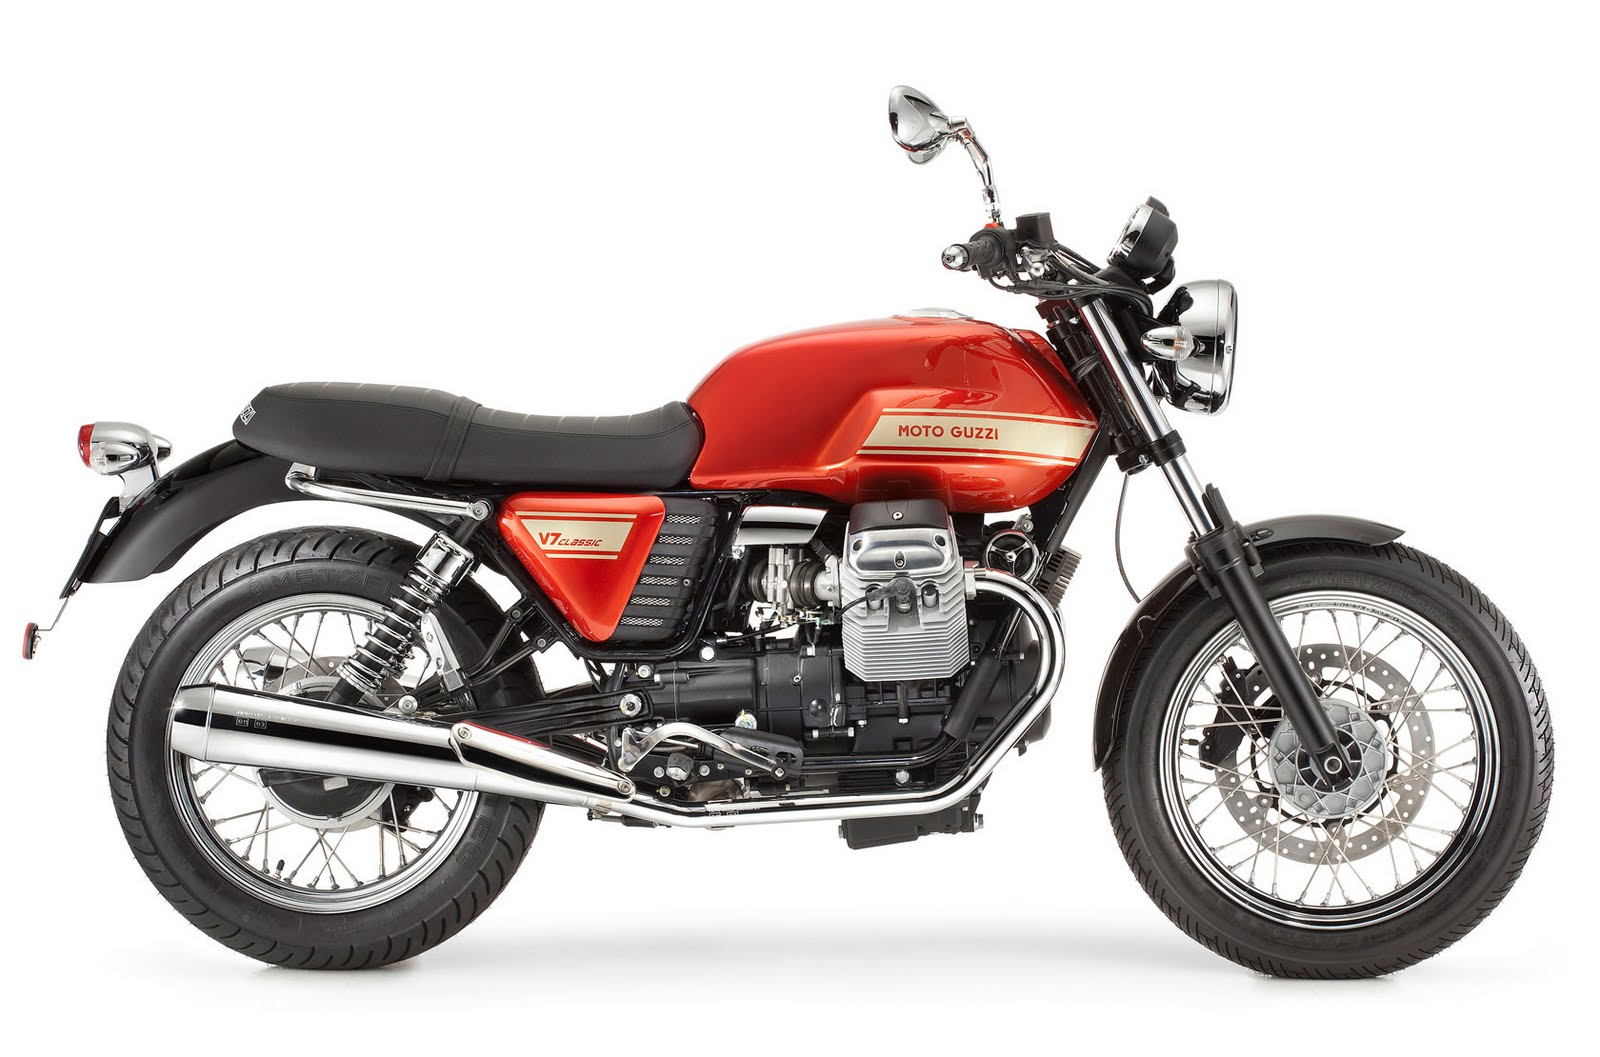 motorcycle pictures moto guzzi v7 classic 2011. Black Bedroom Furniture Sets. Home Design Ideas